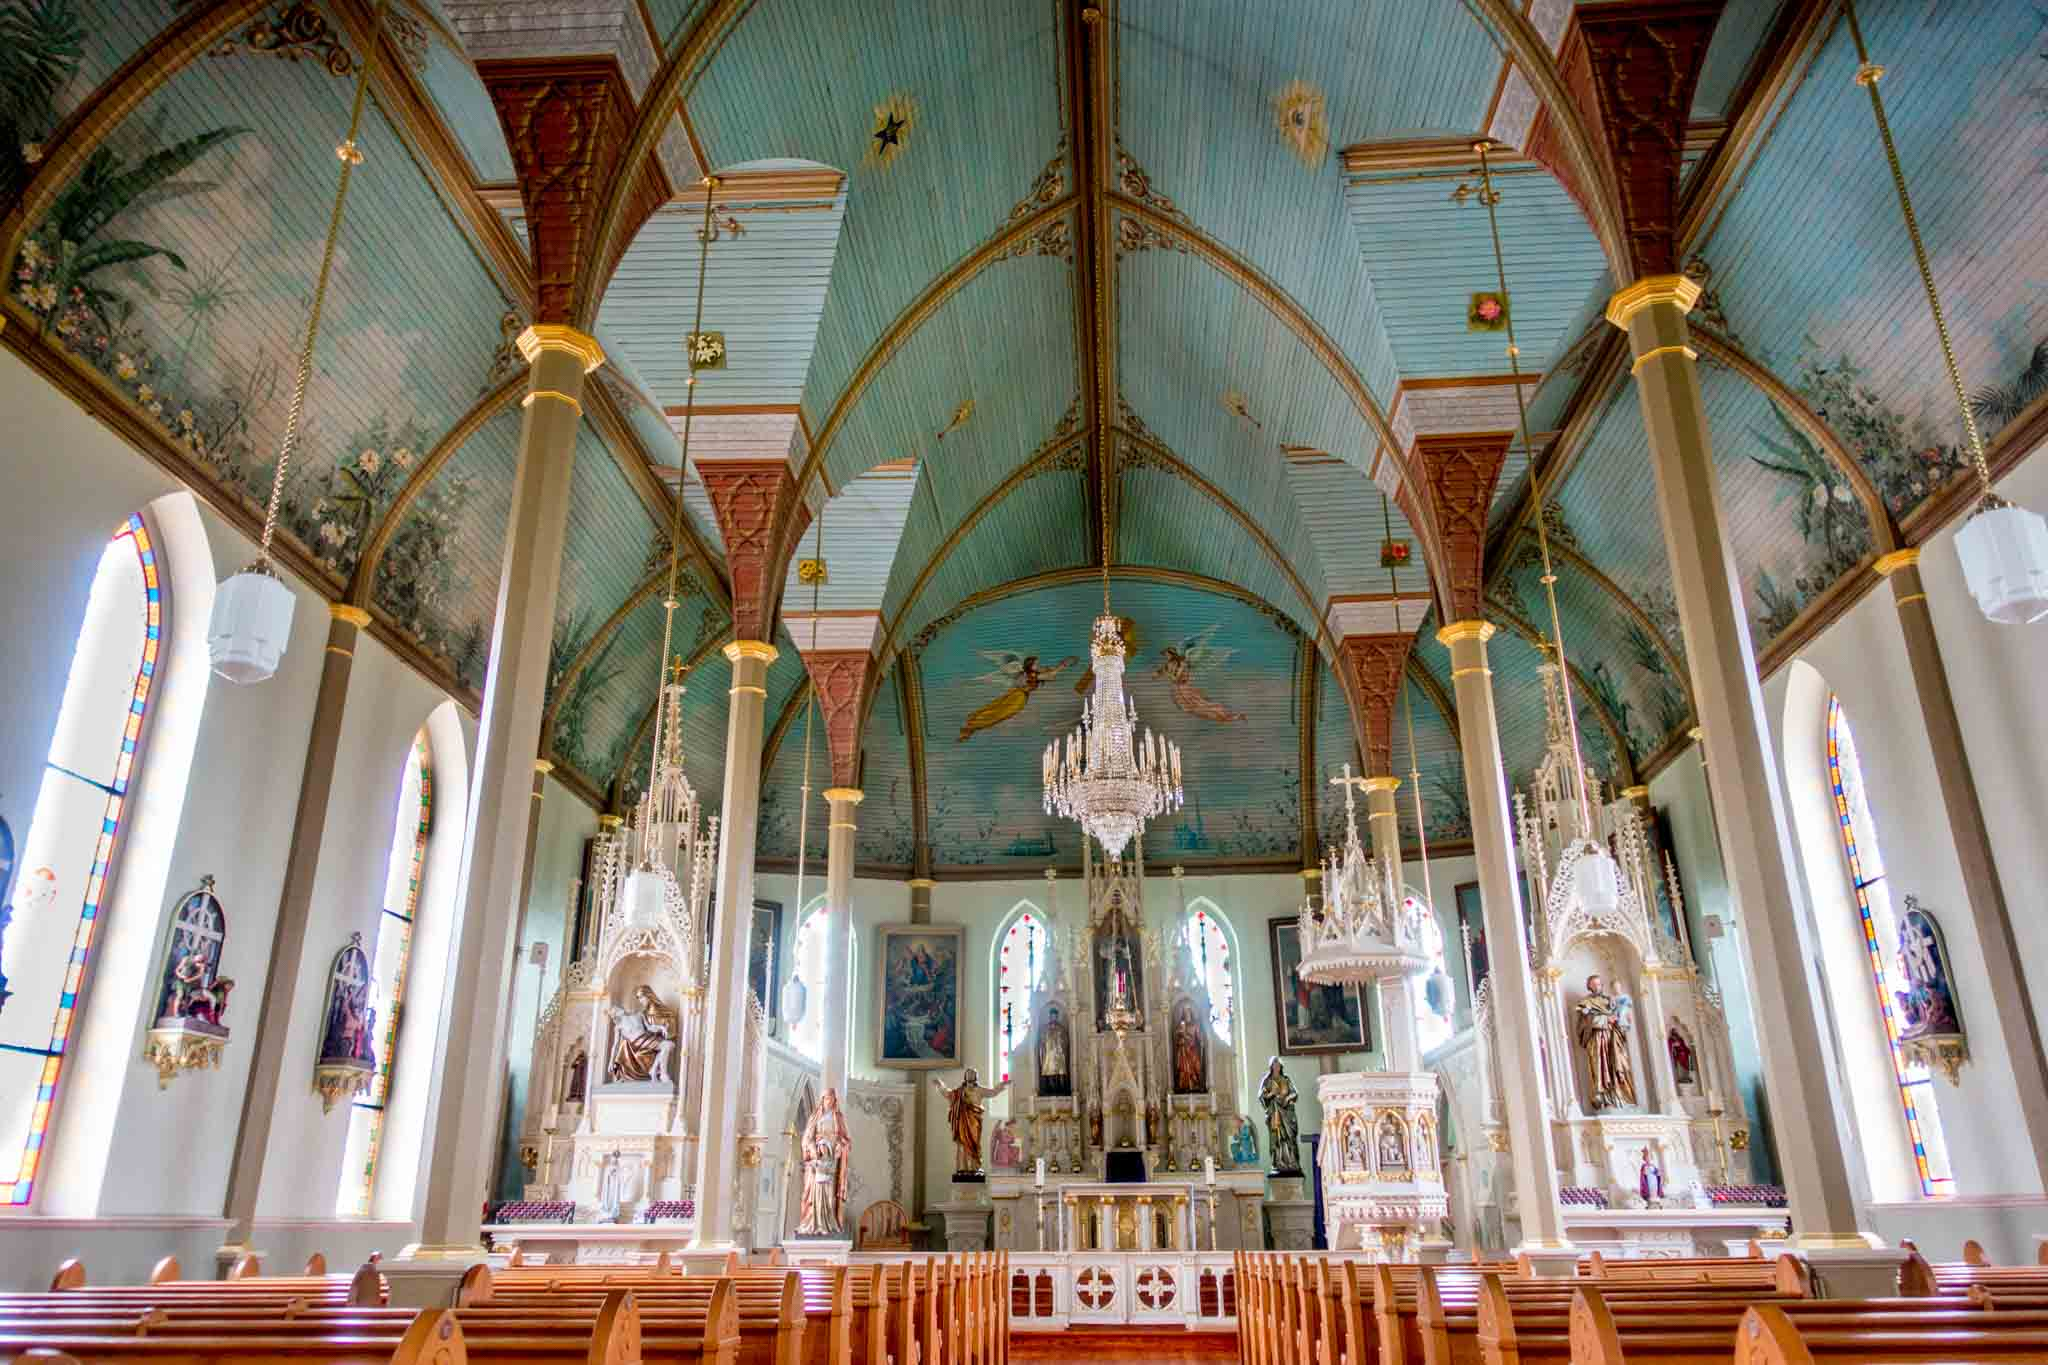 Sanctuary with blue ceiling and chandeliers